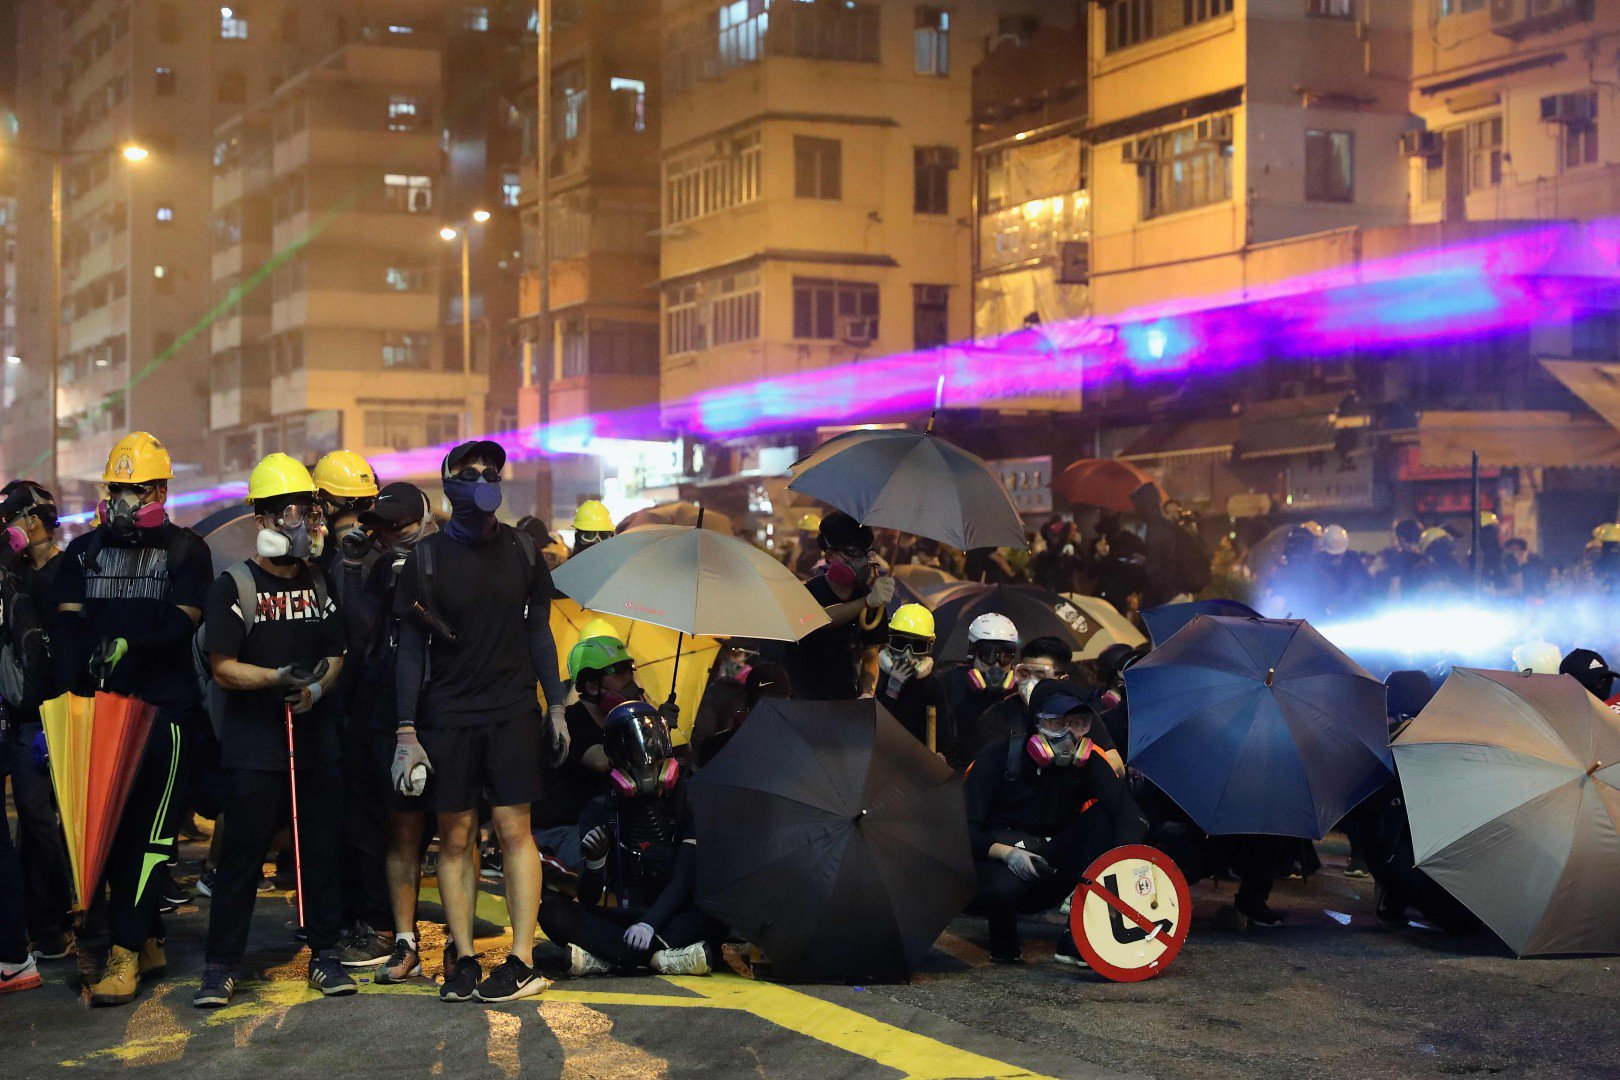 People of Hong Kong defied the official protest ban to turn up for demonstrations across the city.